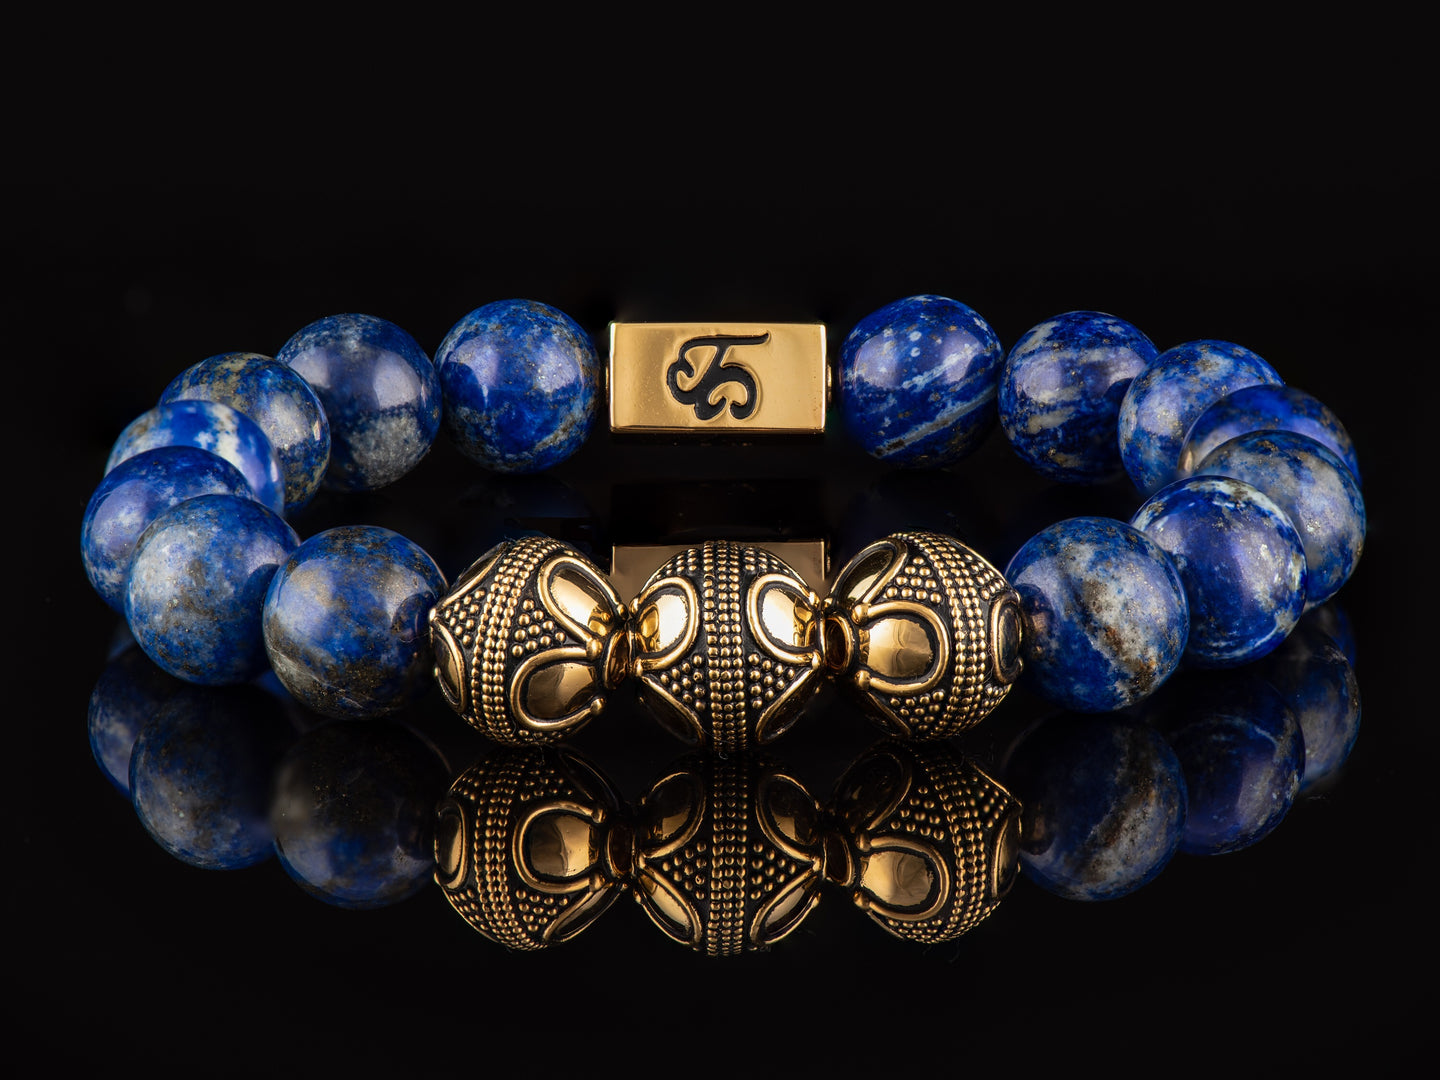 Royalty - Exclusive 24K Gold Men's Stone Bracelet